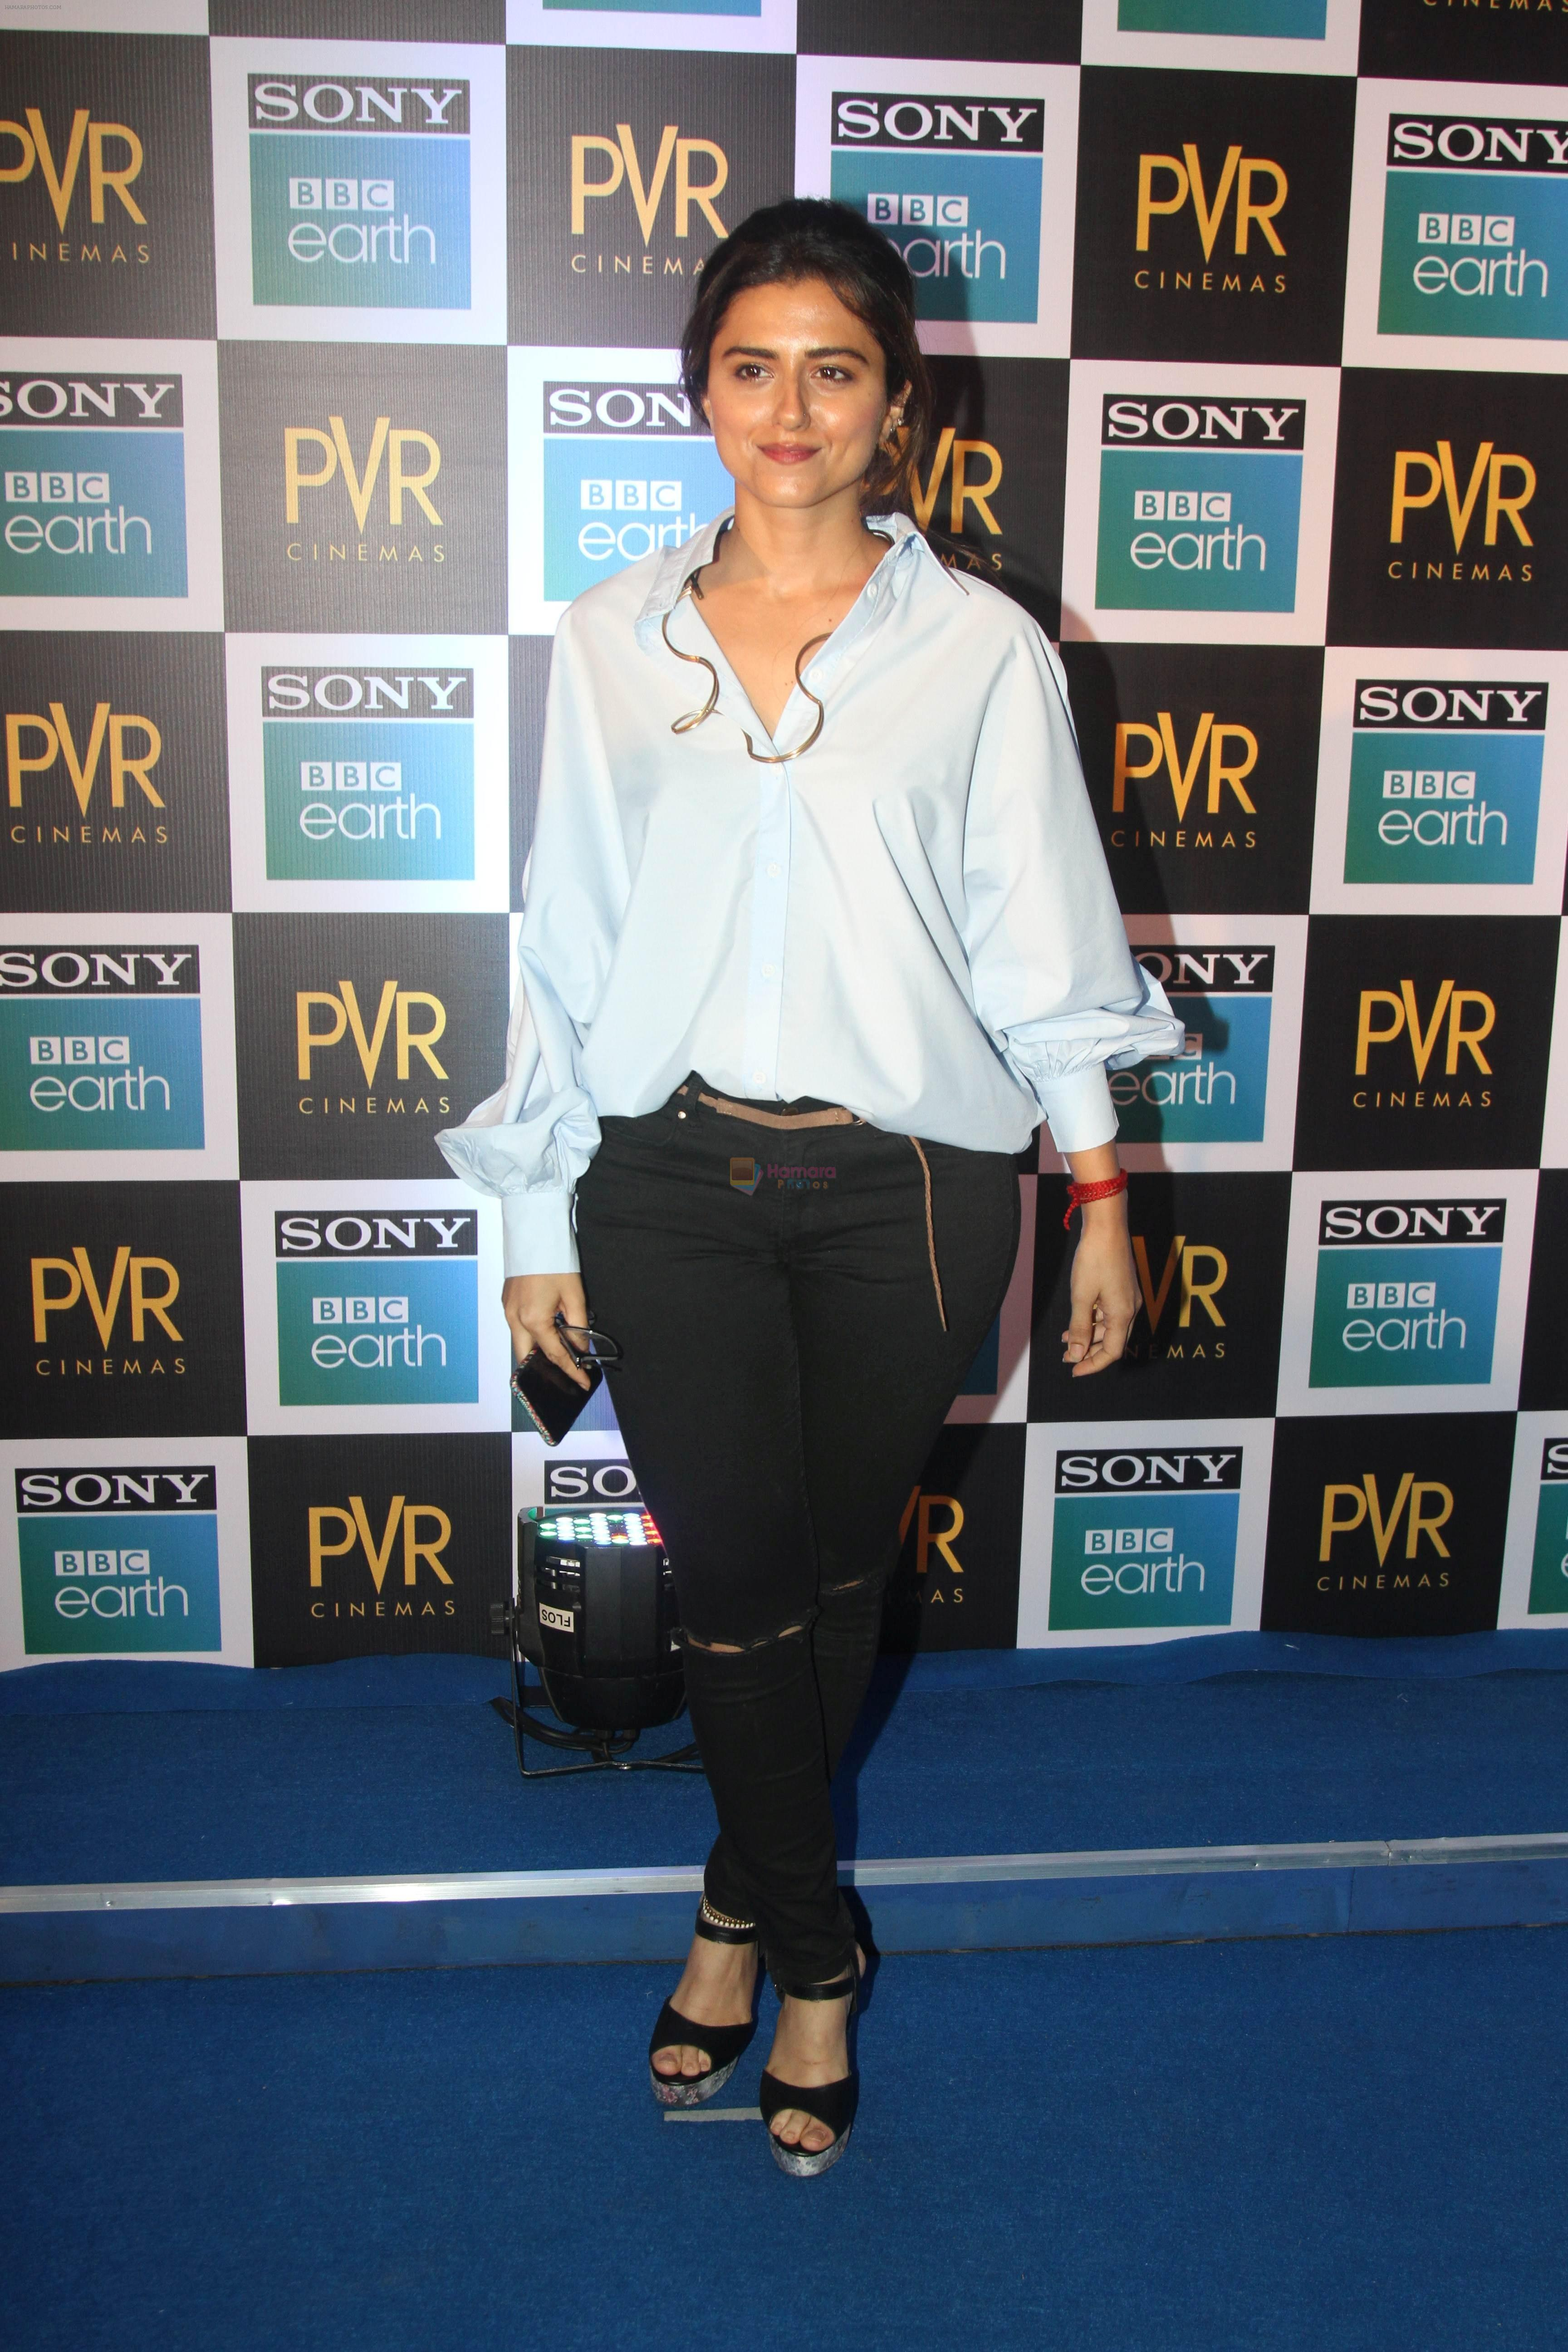 Riddhi Dogra at the Screening of Sony BBC Earth's film Blue Planet 2 at pvr icon in andheri on 15th May 2018